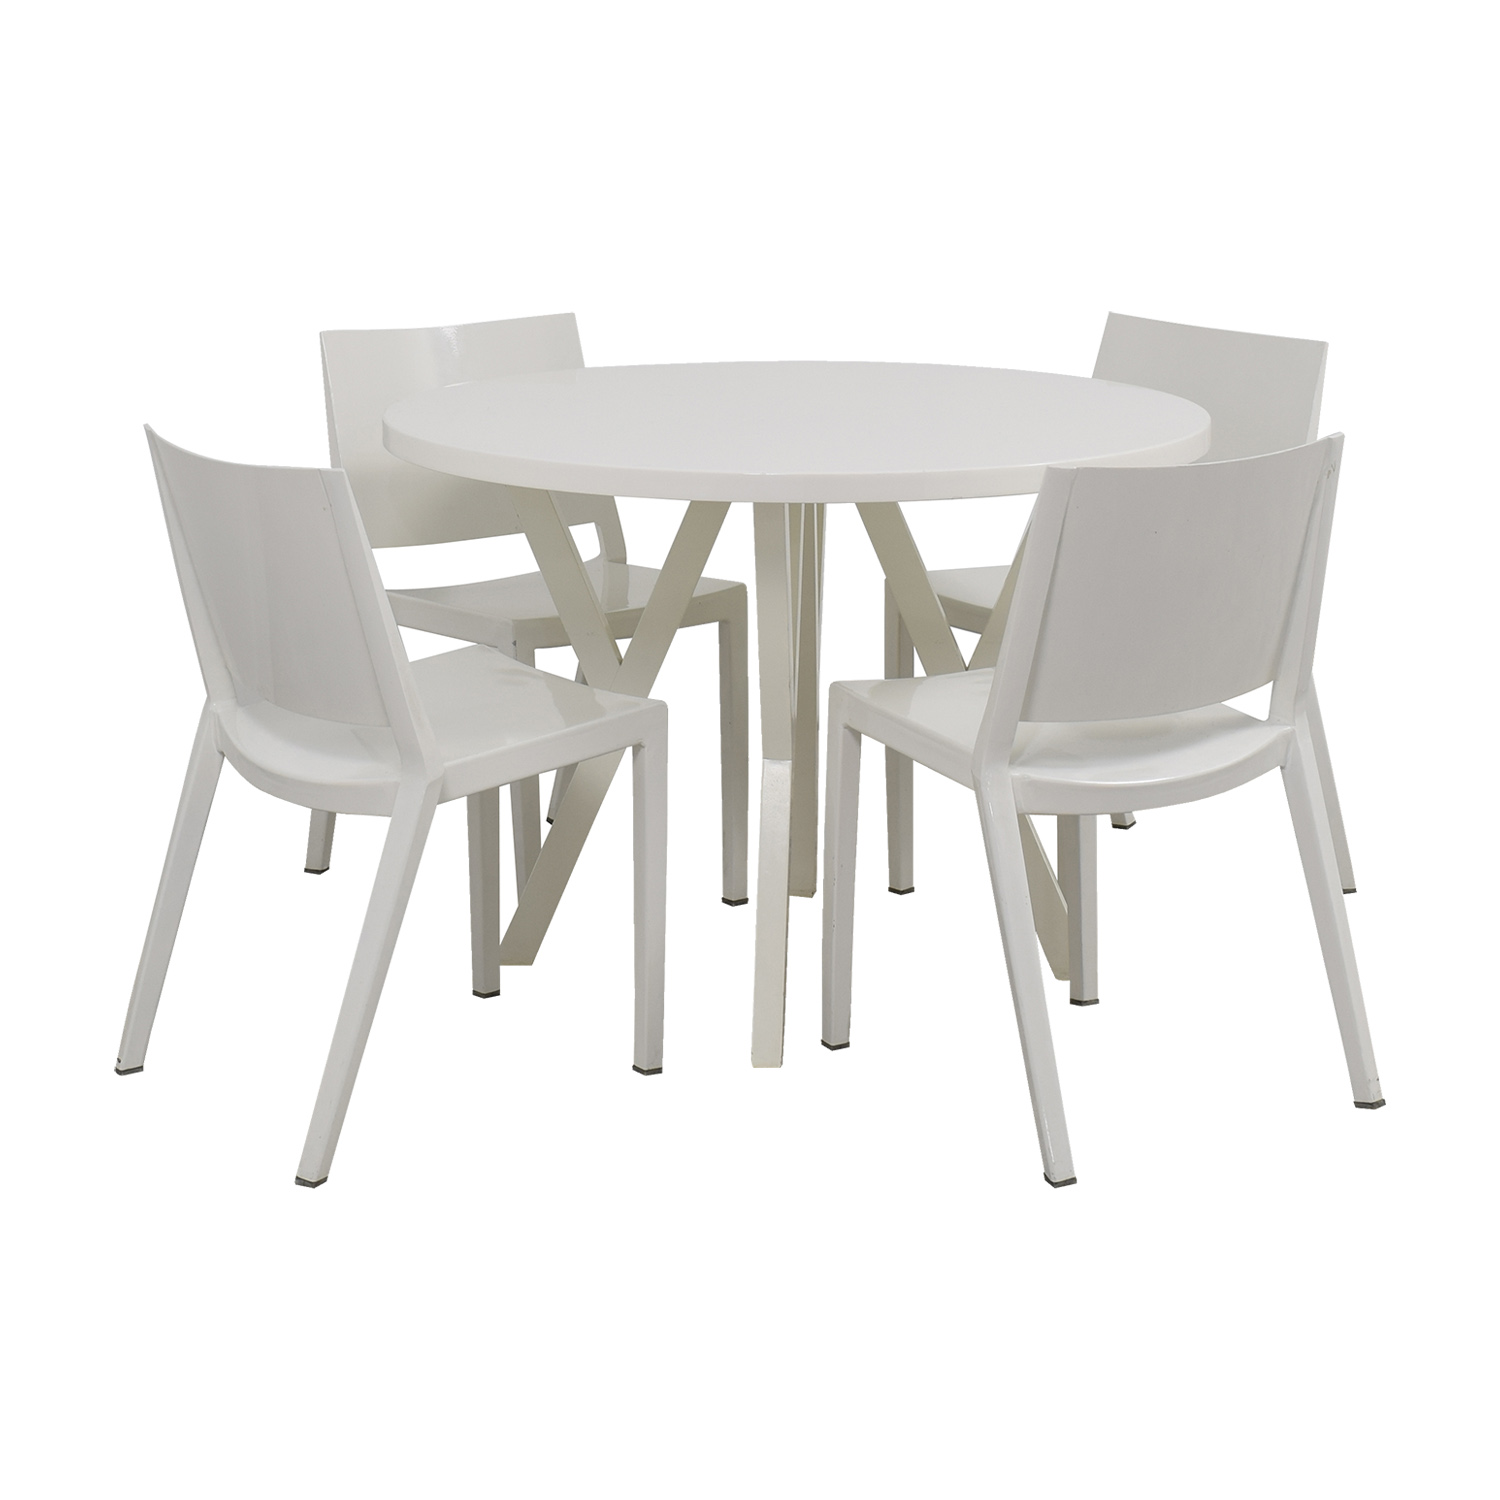 88 Off Crate Barrel Crate Barrel Round White Dining Set Tables